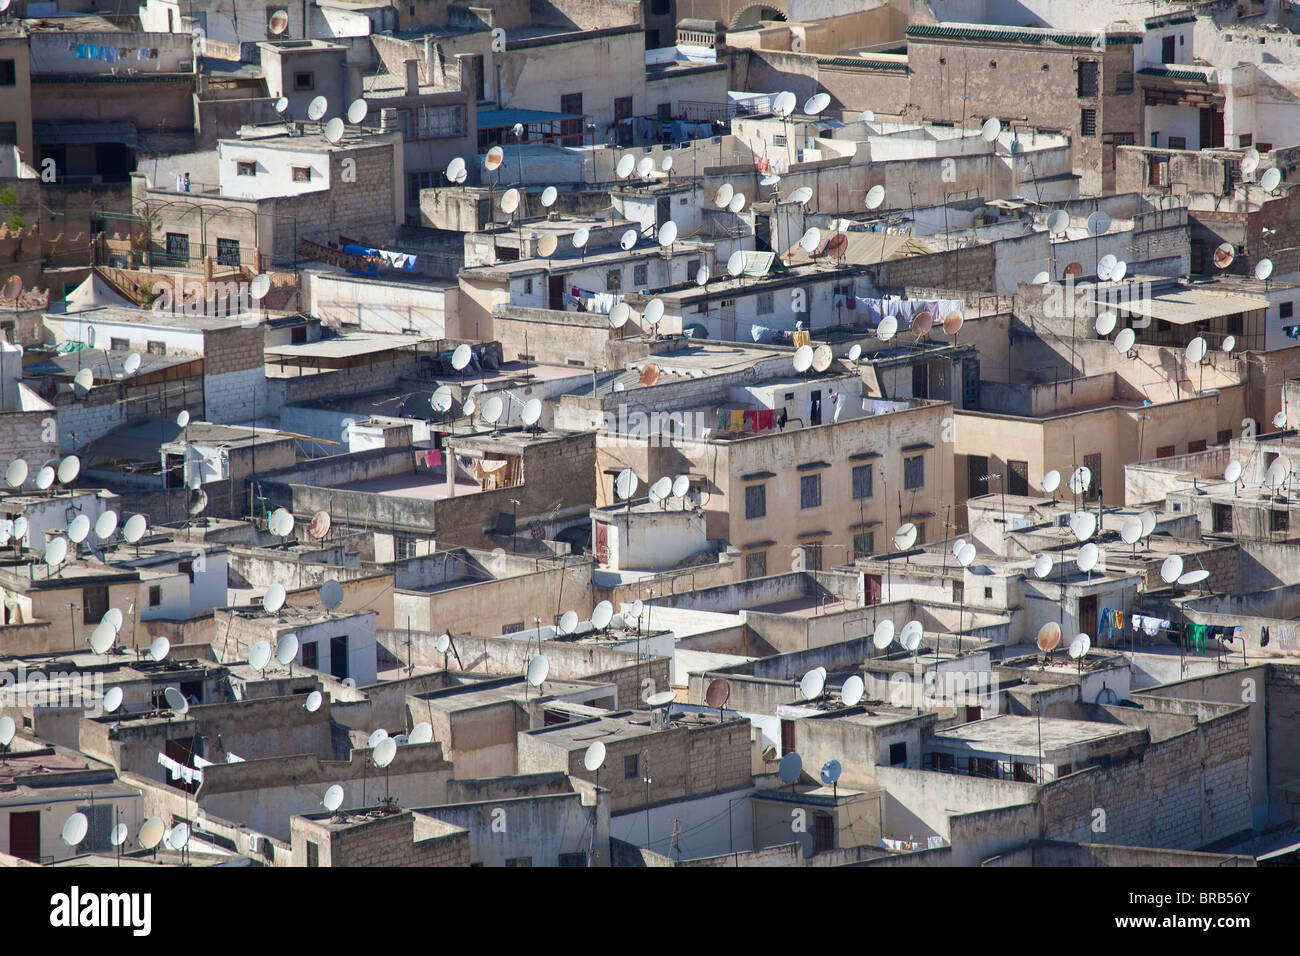 Satellite dish in Fez, Morocco Stock Photo